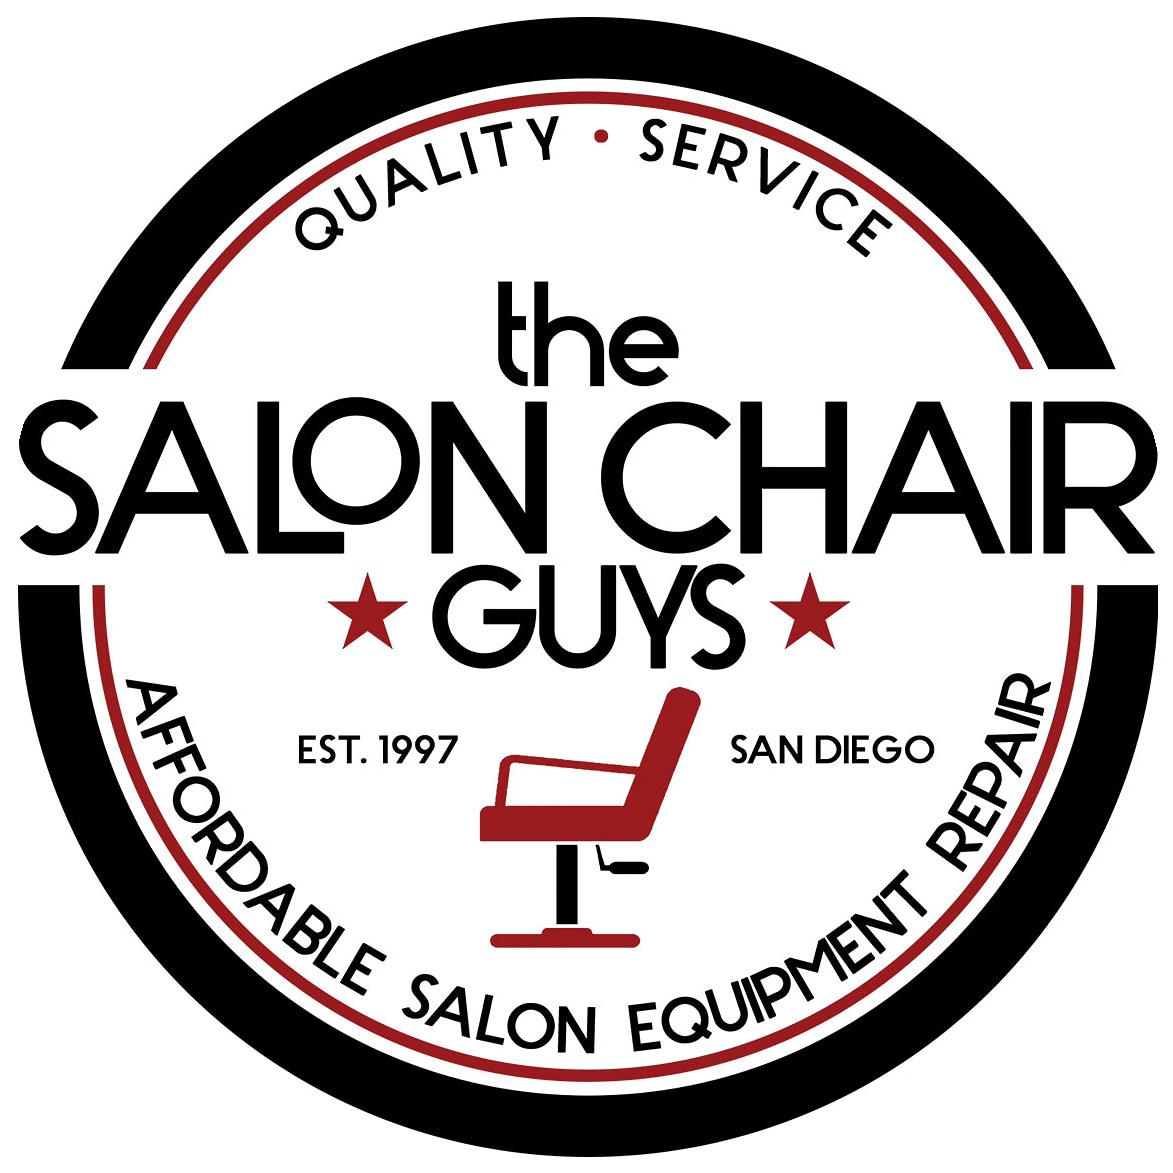 The Salon Chair Guys are repairing and restring your salon and barber chair like no other. And they have an awesome chair cleaner as well. Click the logo to learn more.